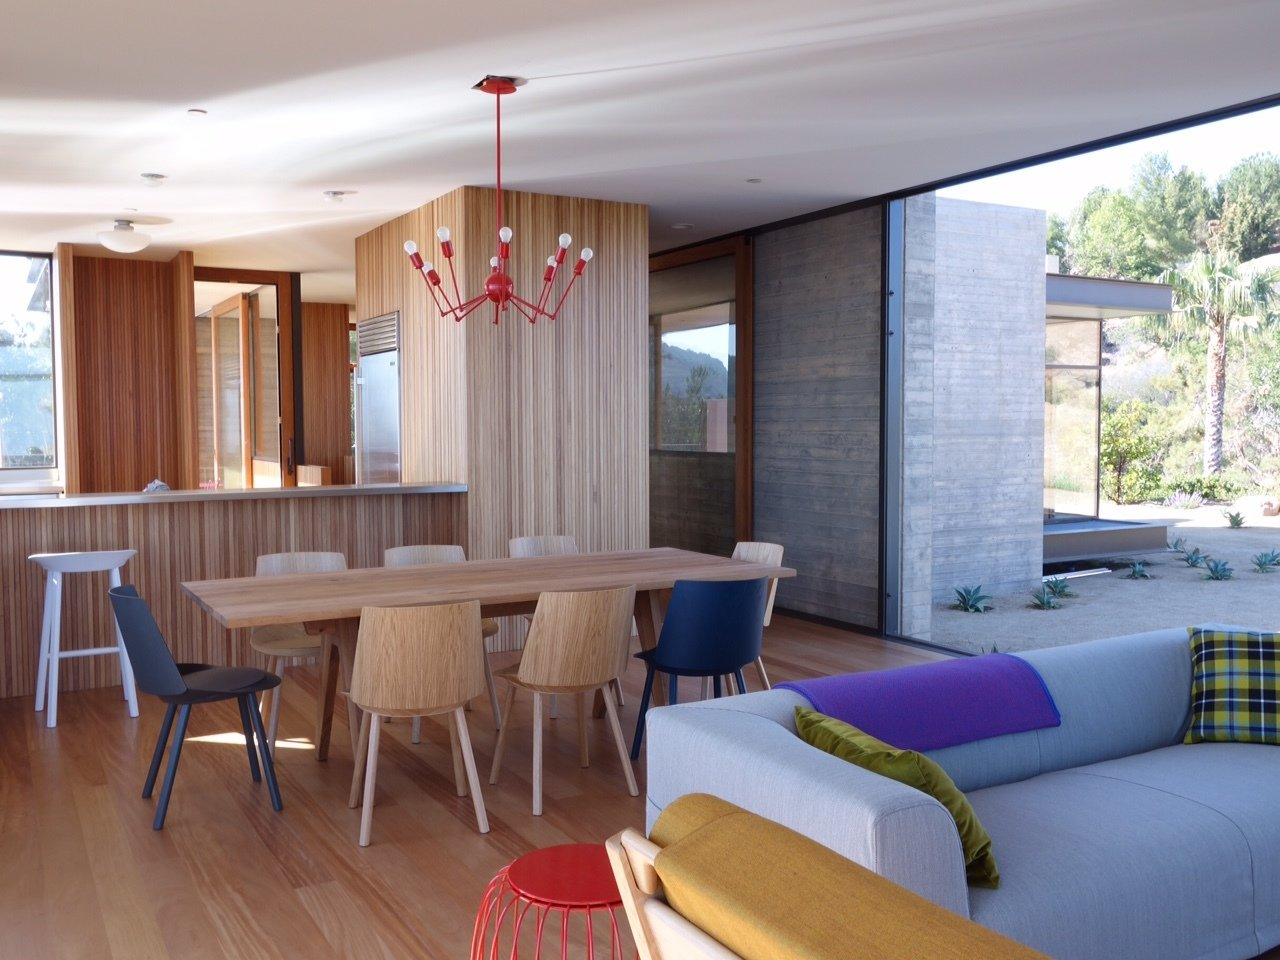 Dining Room, Medium Hardwood Floor, and Accent Lighting  Saddle Peak from Take Your Next Vacation in a Midcentury Home in the Santa Monica Mountains